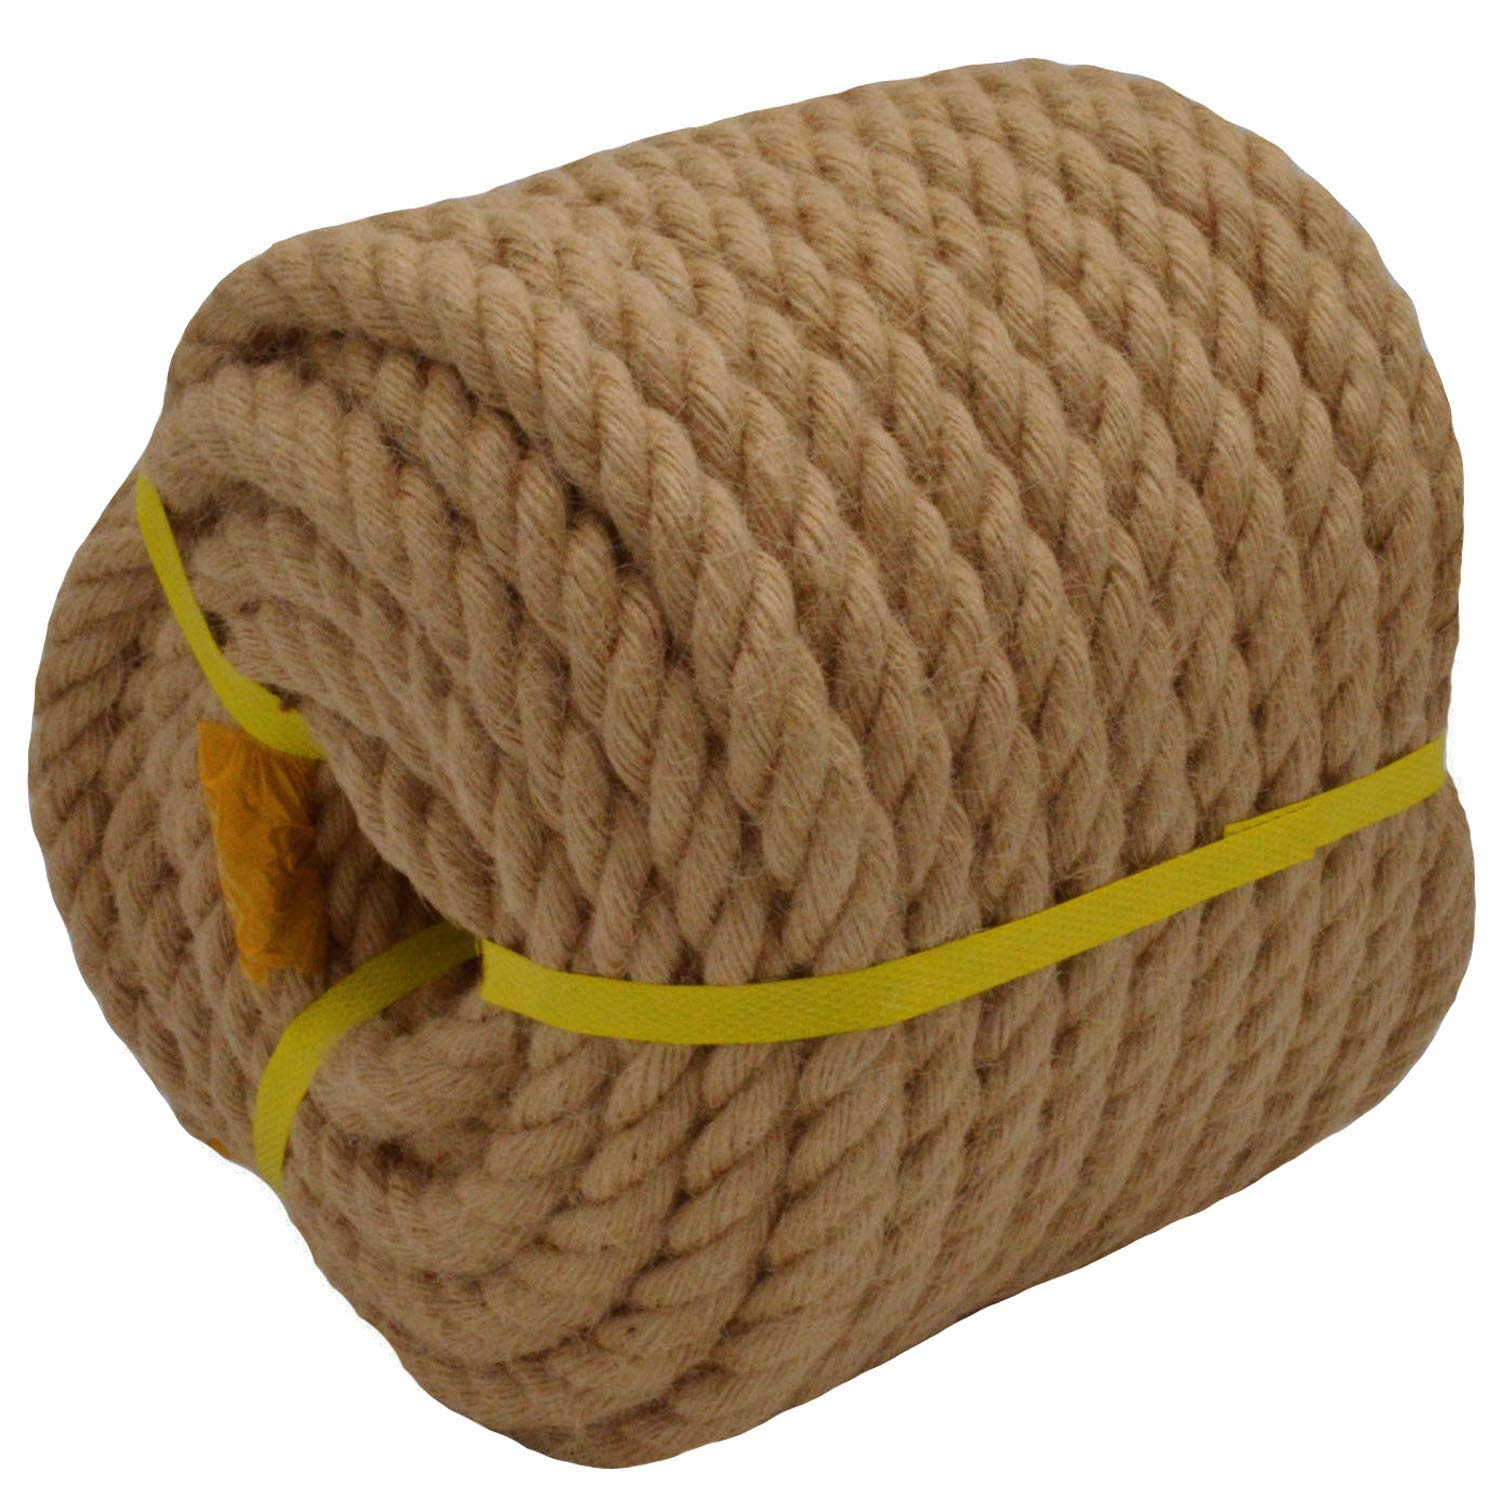 Twisted Manila Rope Jute Rope (3/4 in x 100 ft) Natural Thick Hemp Rope for Crafts, Nautical, Landscaping, Decorations, Hanging Swing by YUZENET